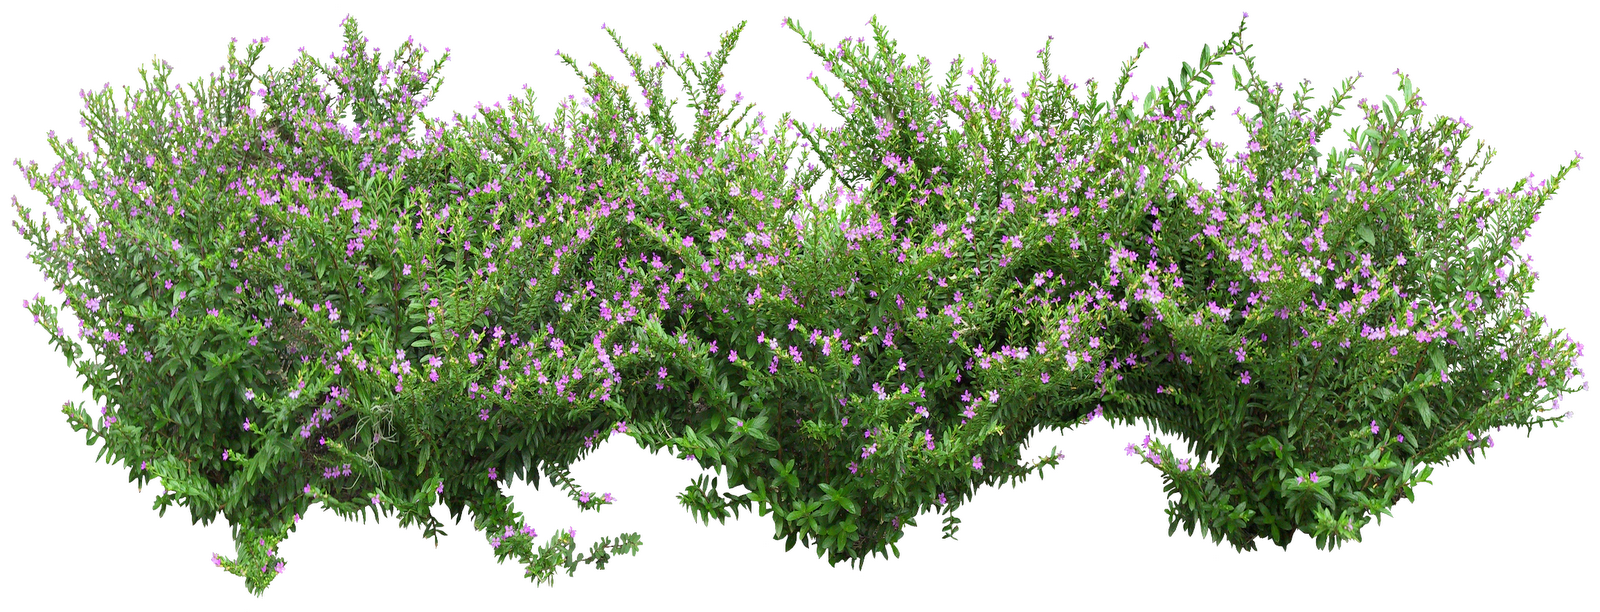 Ornamental Shrub Clipart 20 Free Cliparts Download